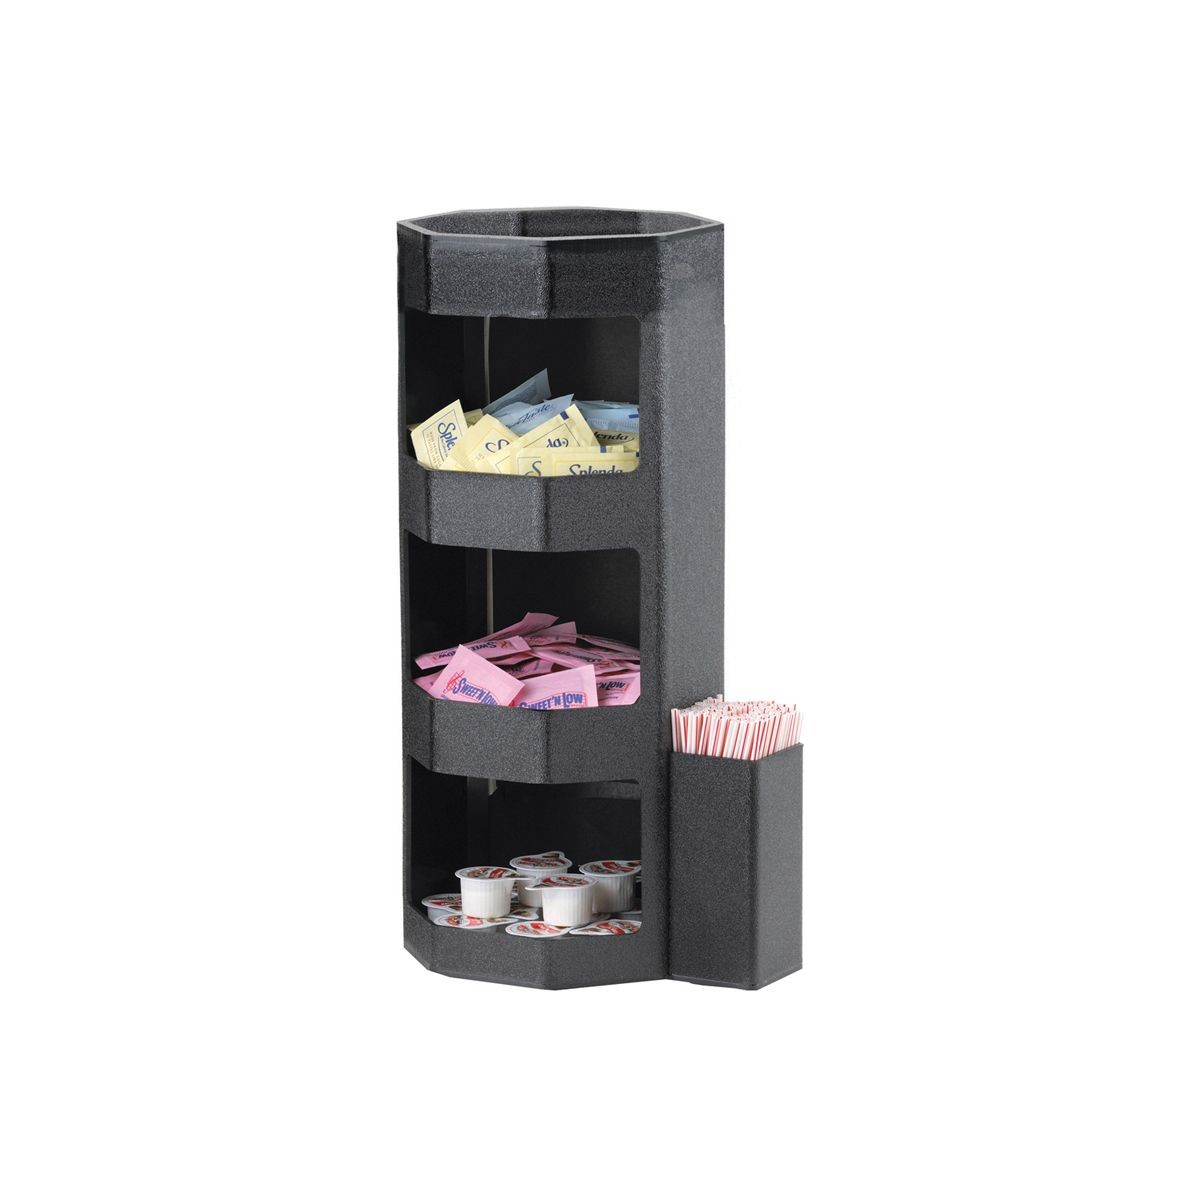 Service Ideas OCH7715C 4-Compartment Octagonal Vertical Condiment Caddy